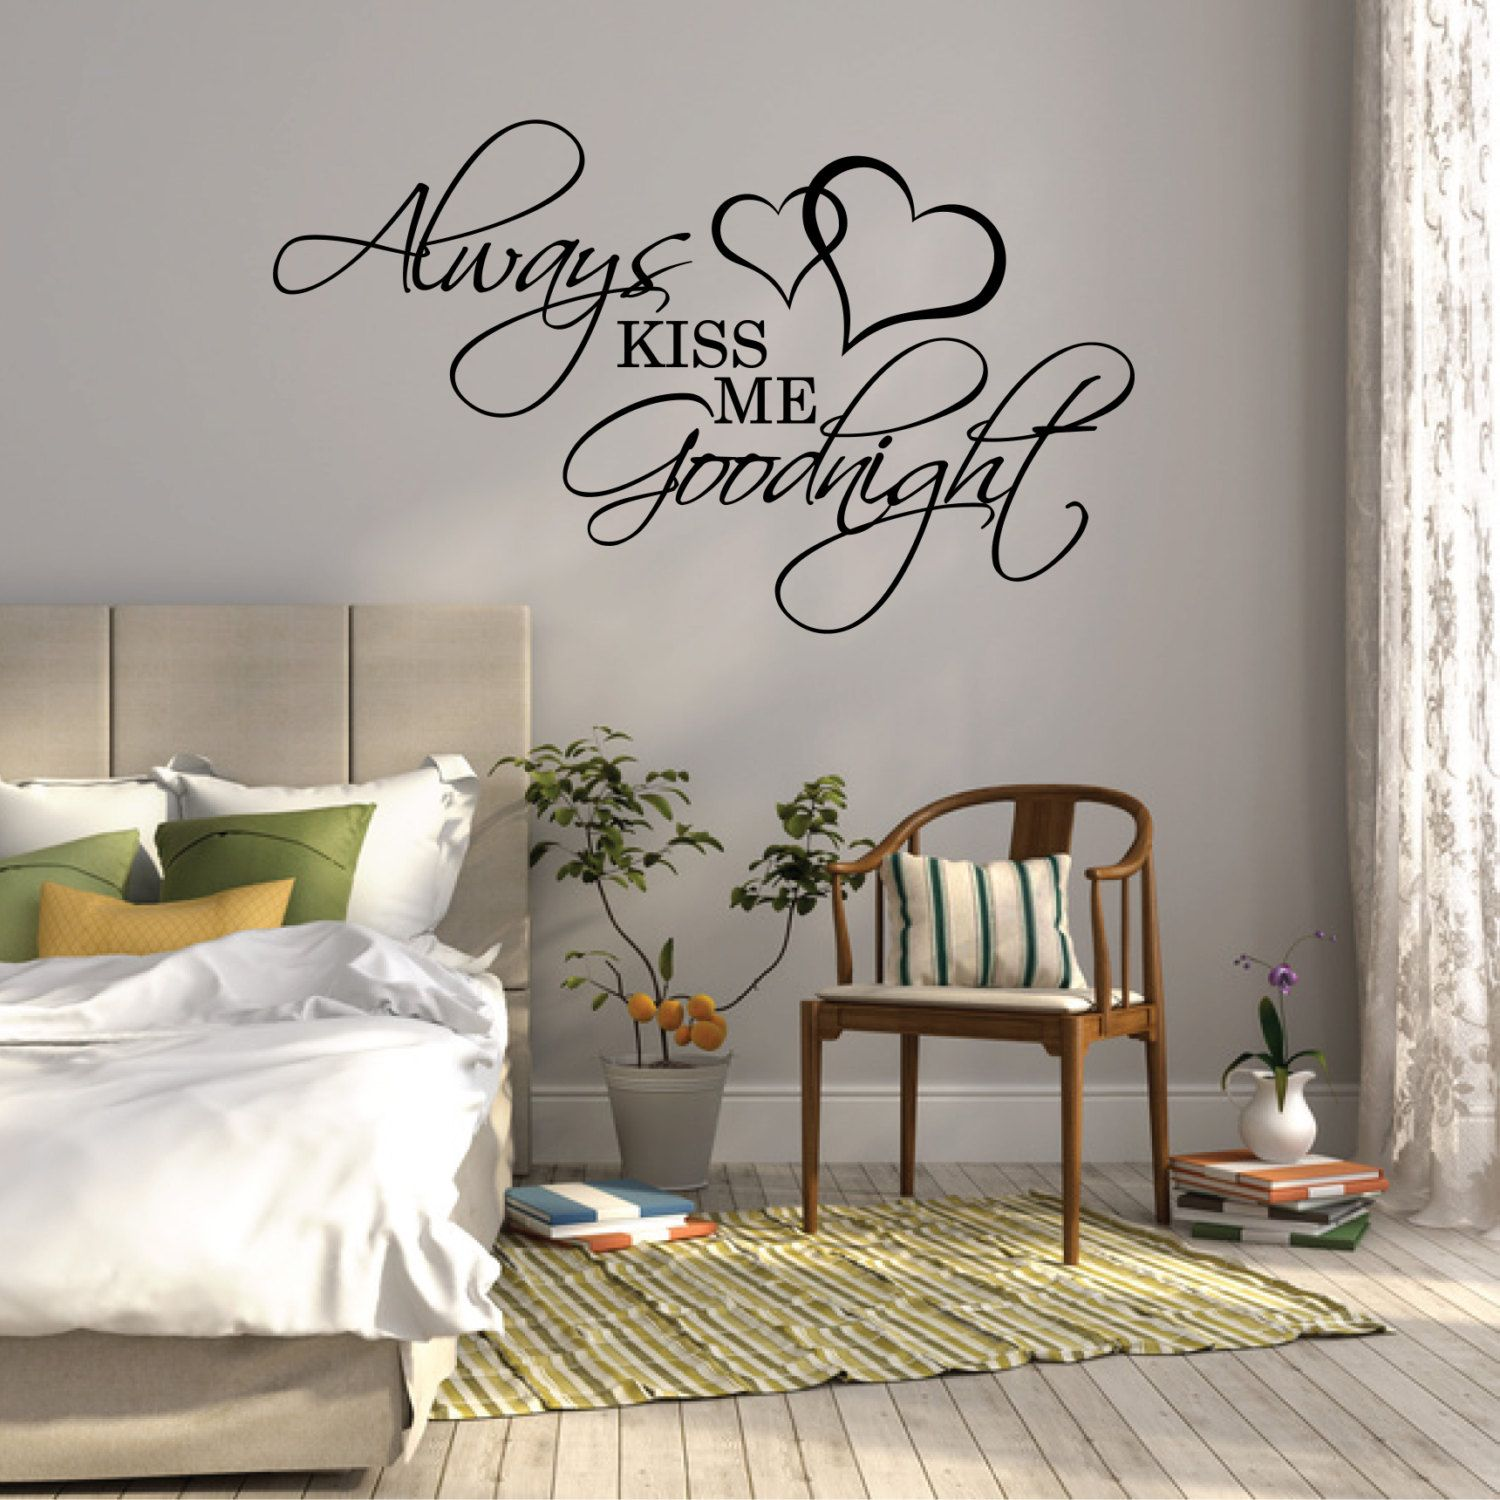 Wall sticker quote always kiss me goodnight over bed for Bedroom wall art decor